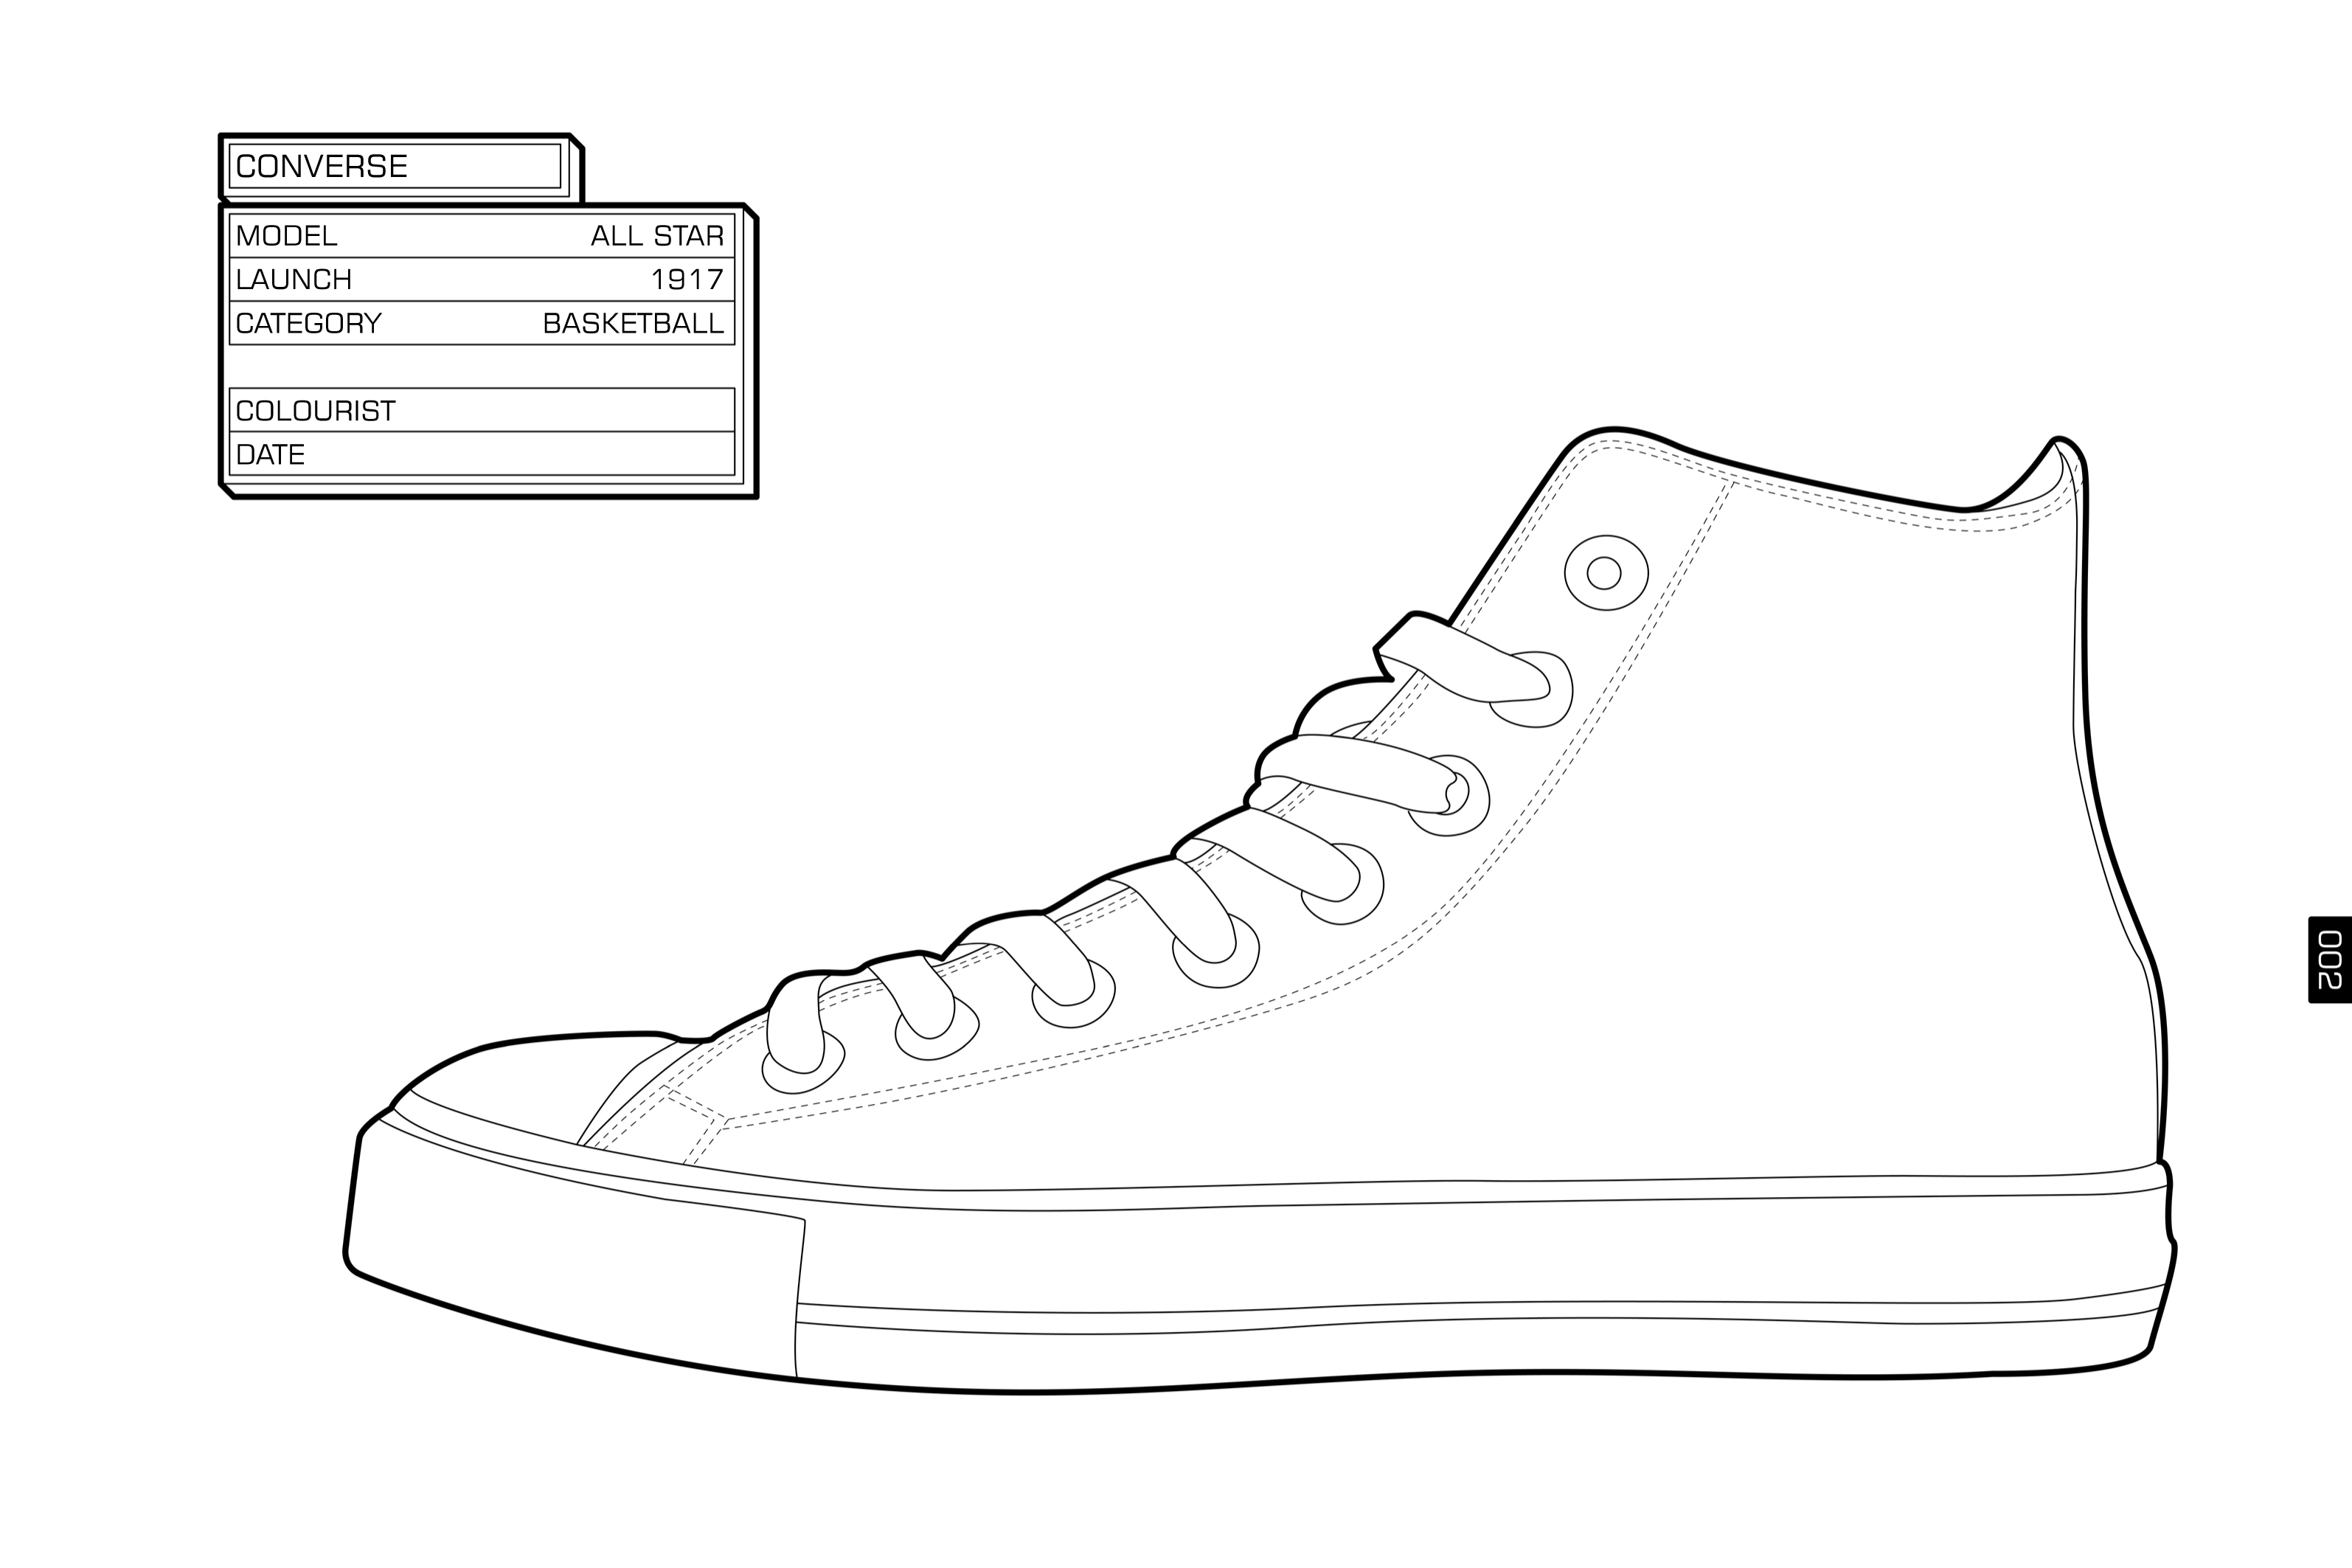 Jordan shoes coloring pages printable - Printable Shoe Coloring Pages Jordan Shoes Printable Downlload